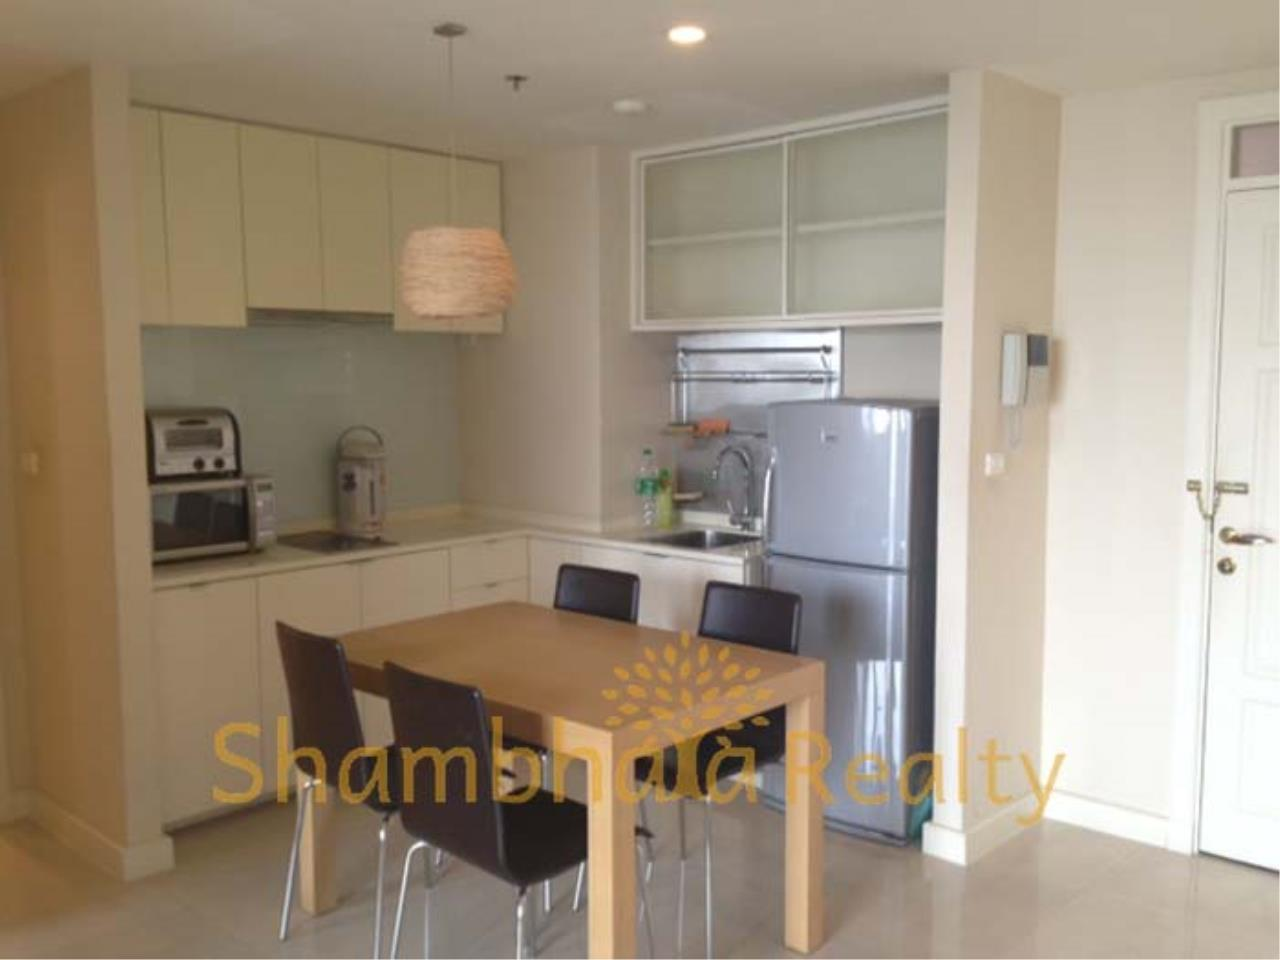 Shambhala Realty Agency's Supalai oriental Place Condominium for Rent in Suan Plu 8 1